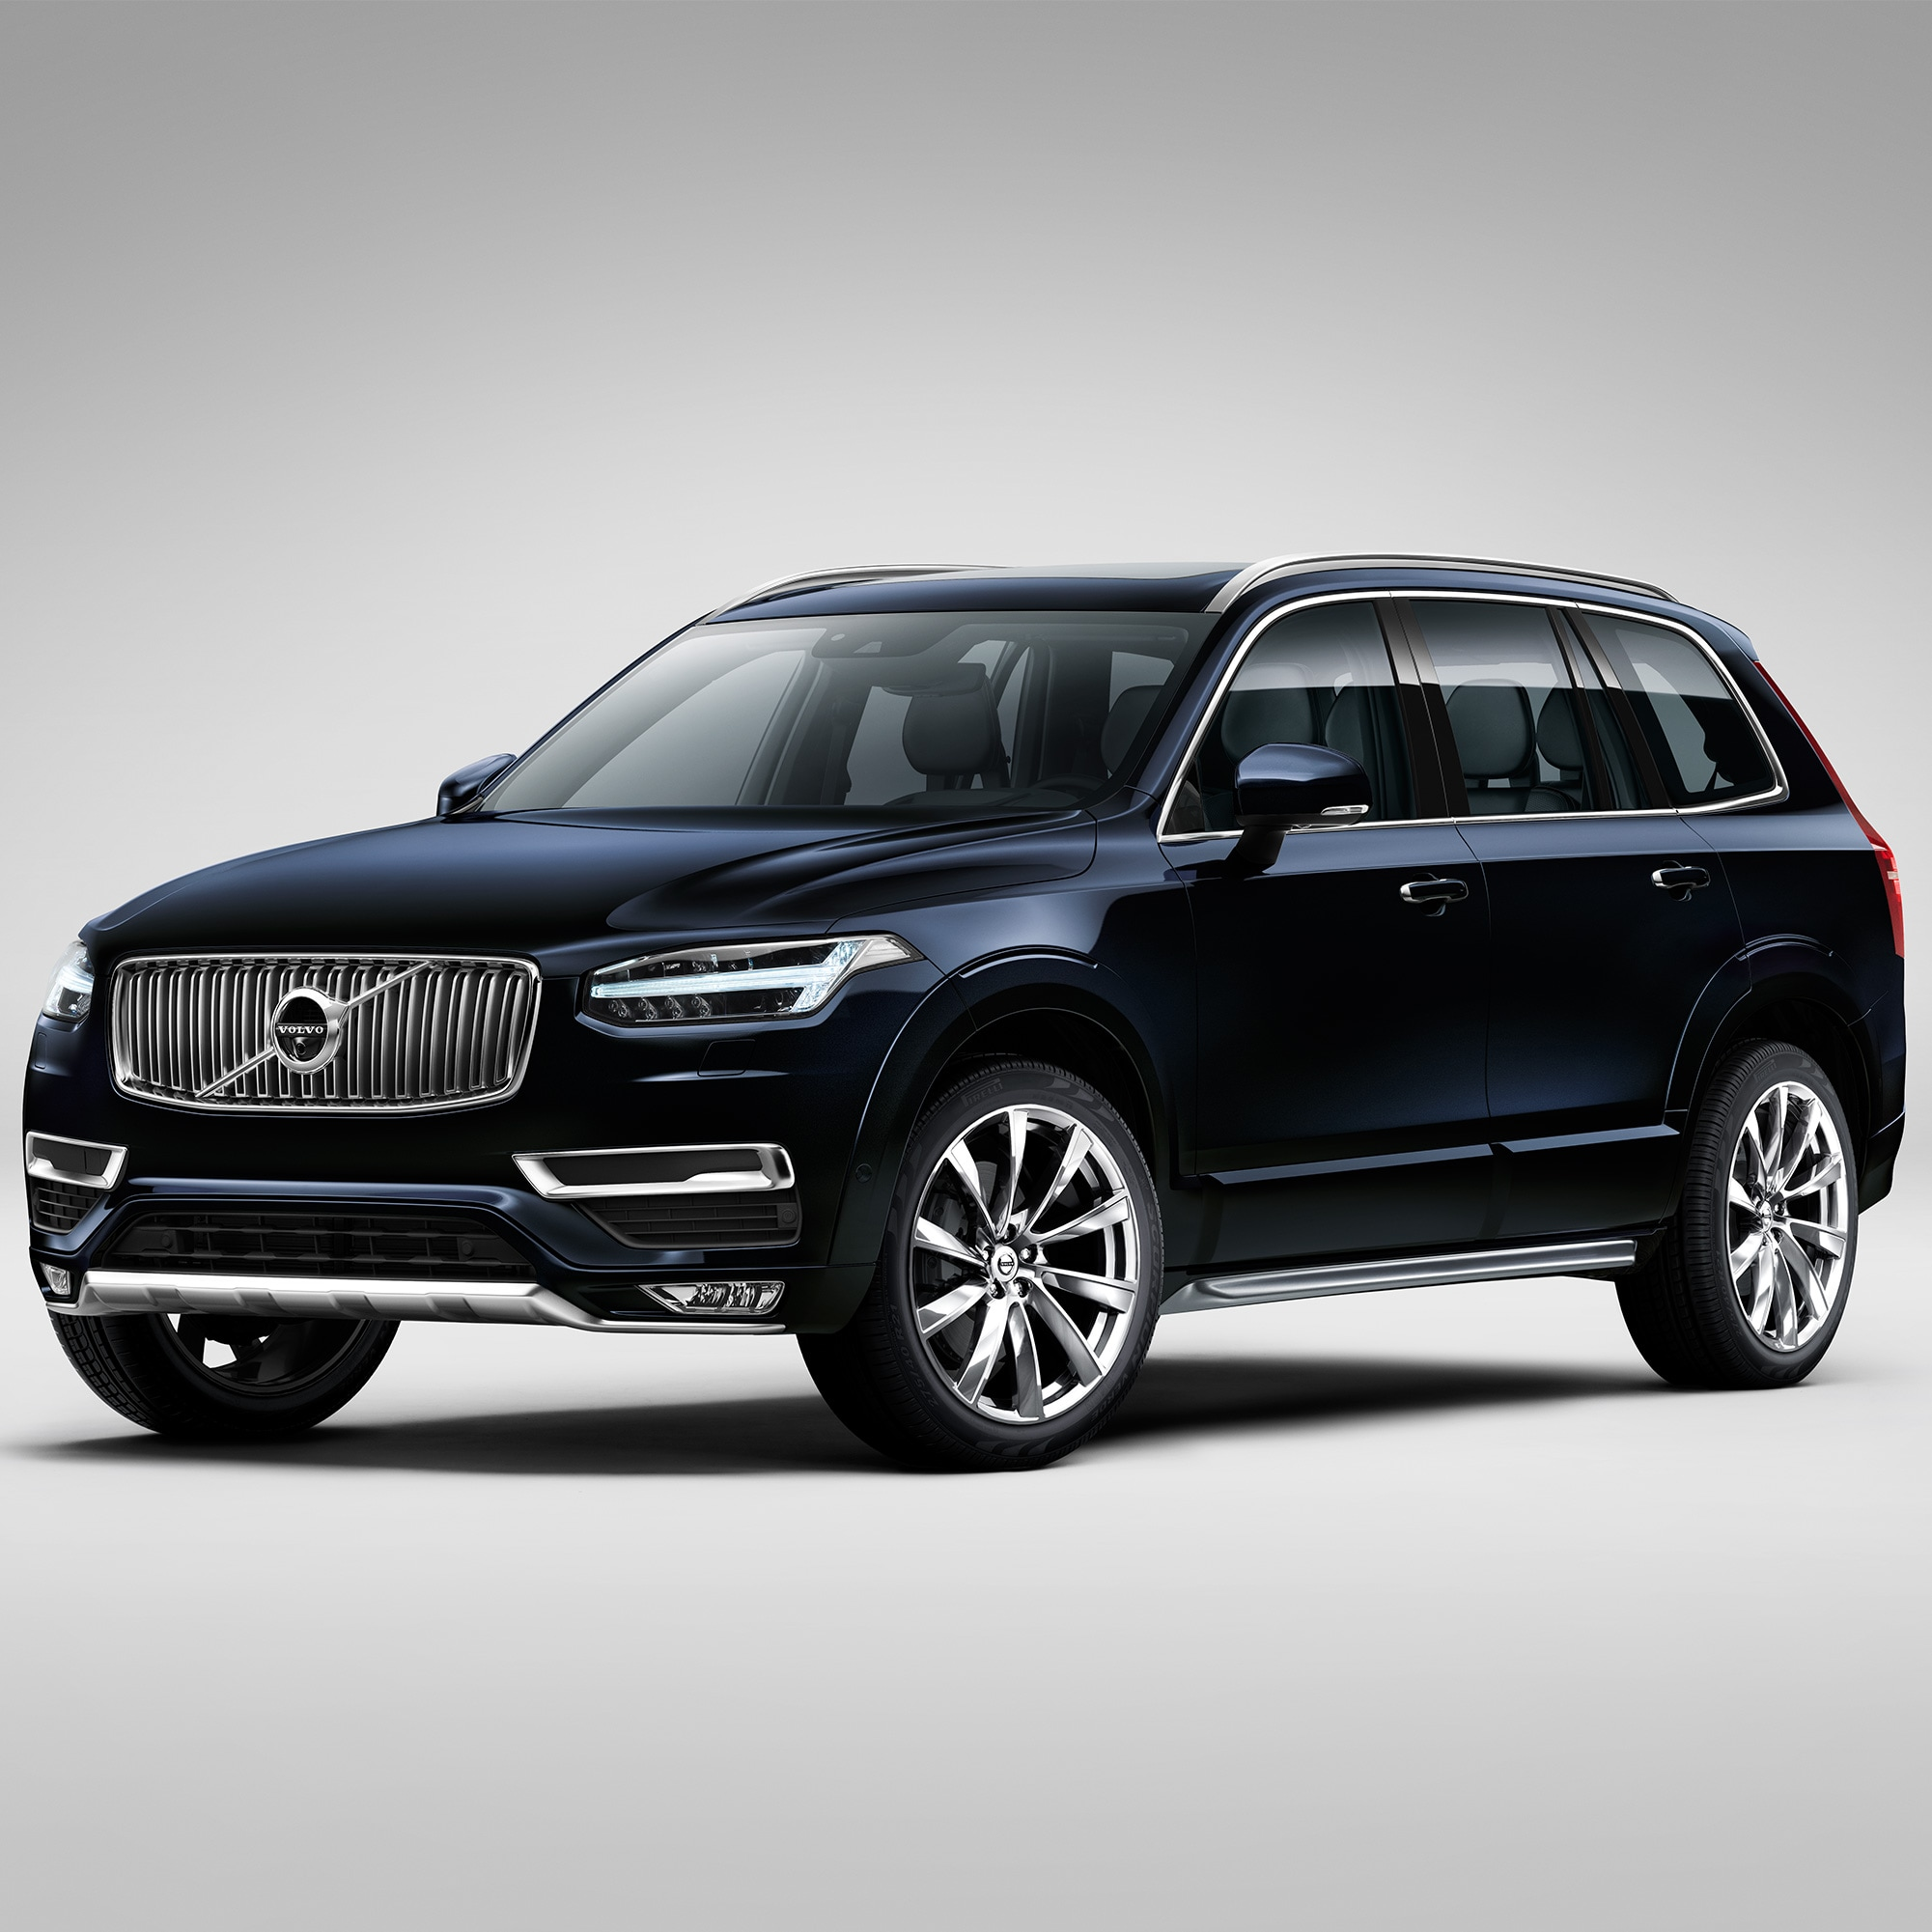 Volvo Overseas Delivery | Ordering | Volvo Car USA